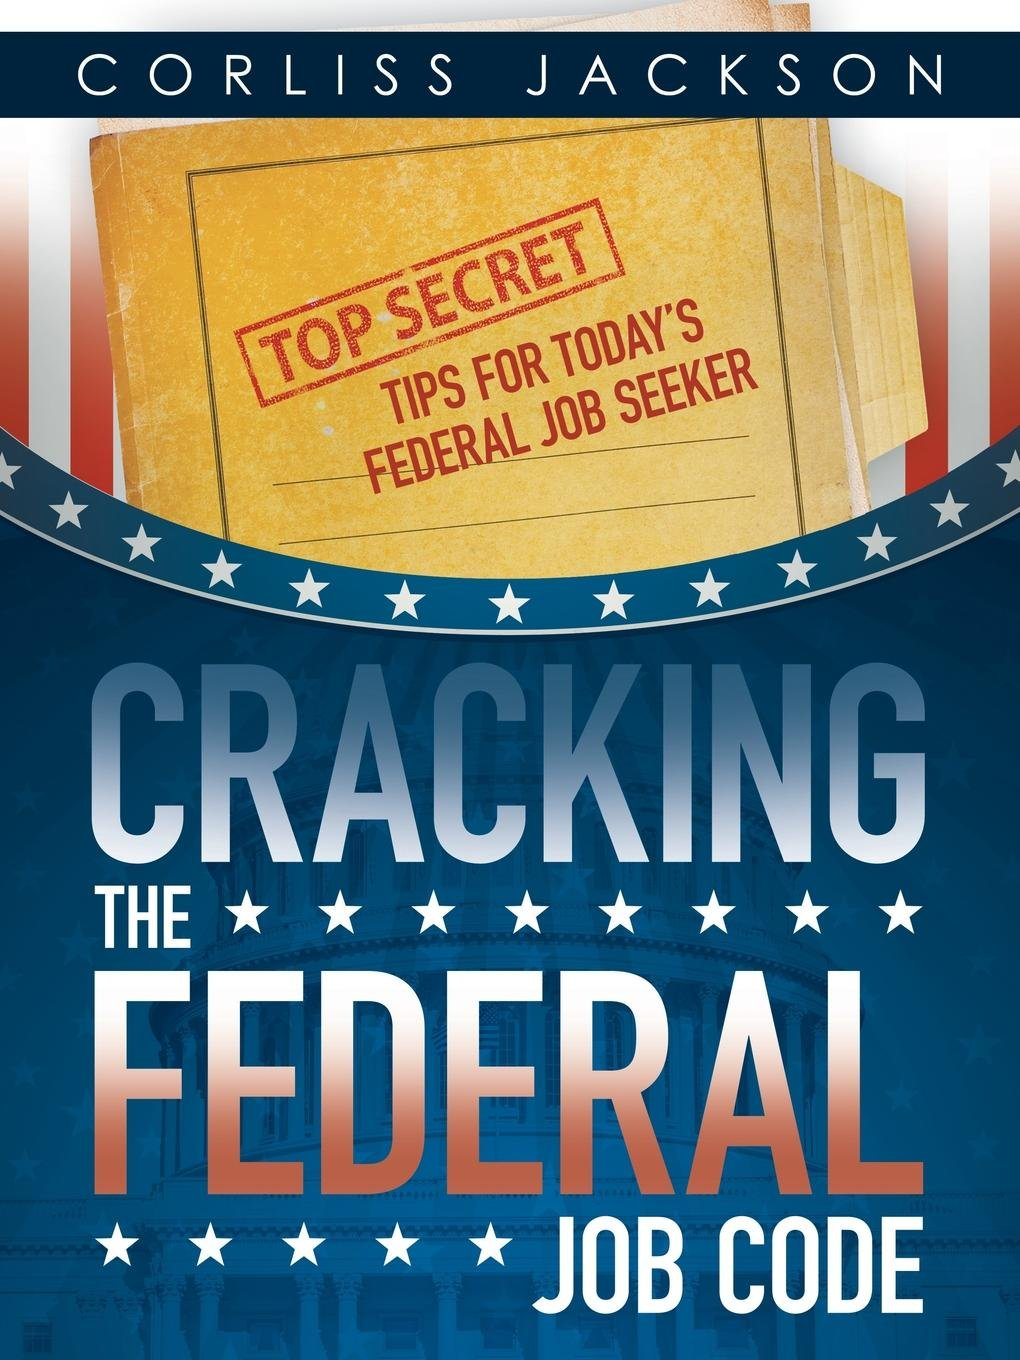 Cracking The Federal Job Code Corliss Jackson 9781491786987